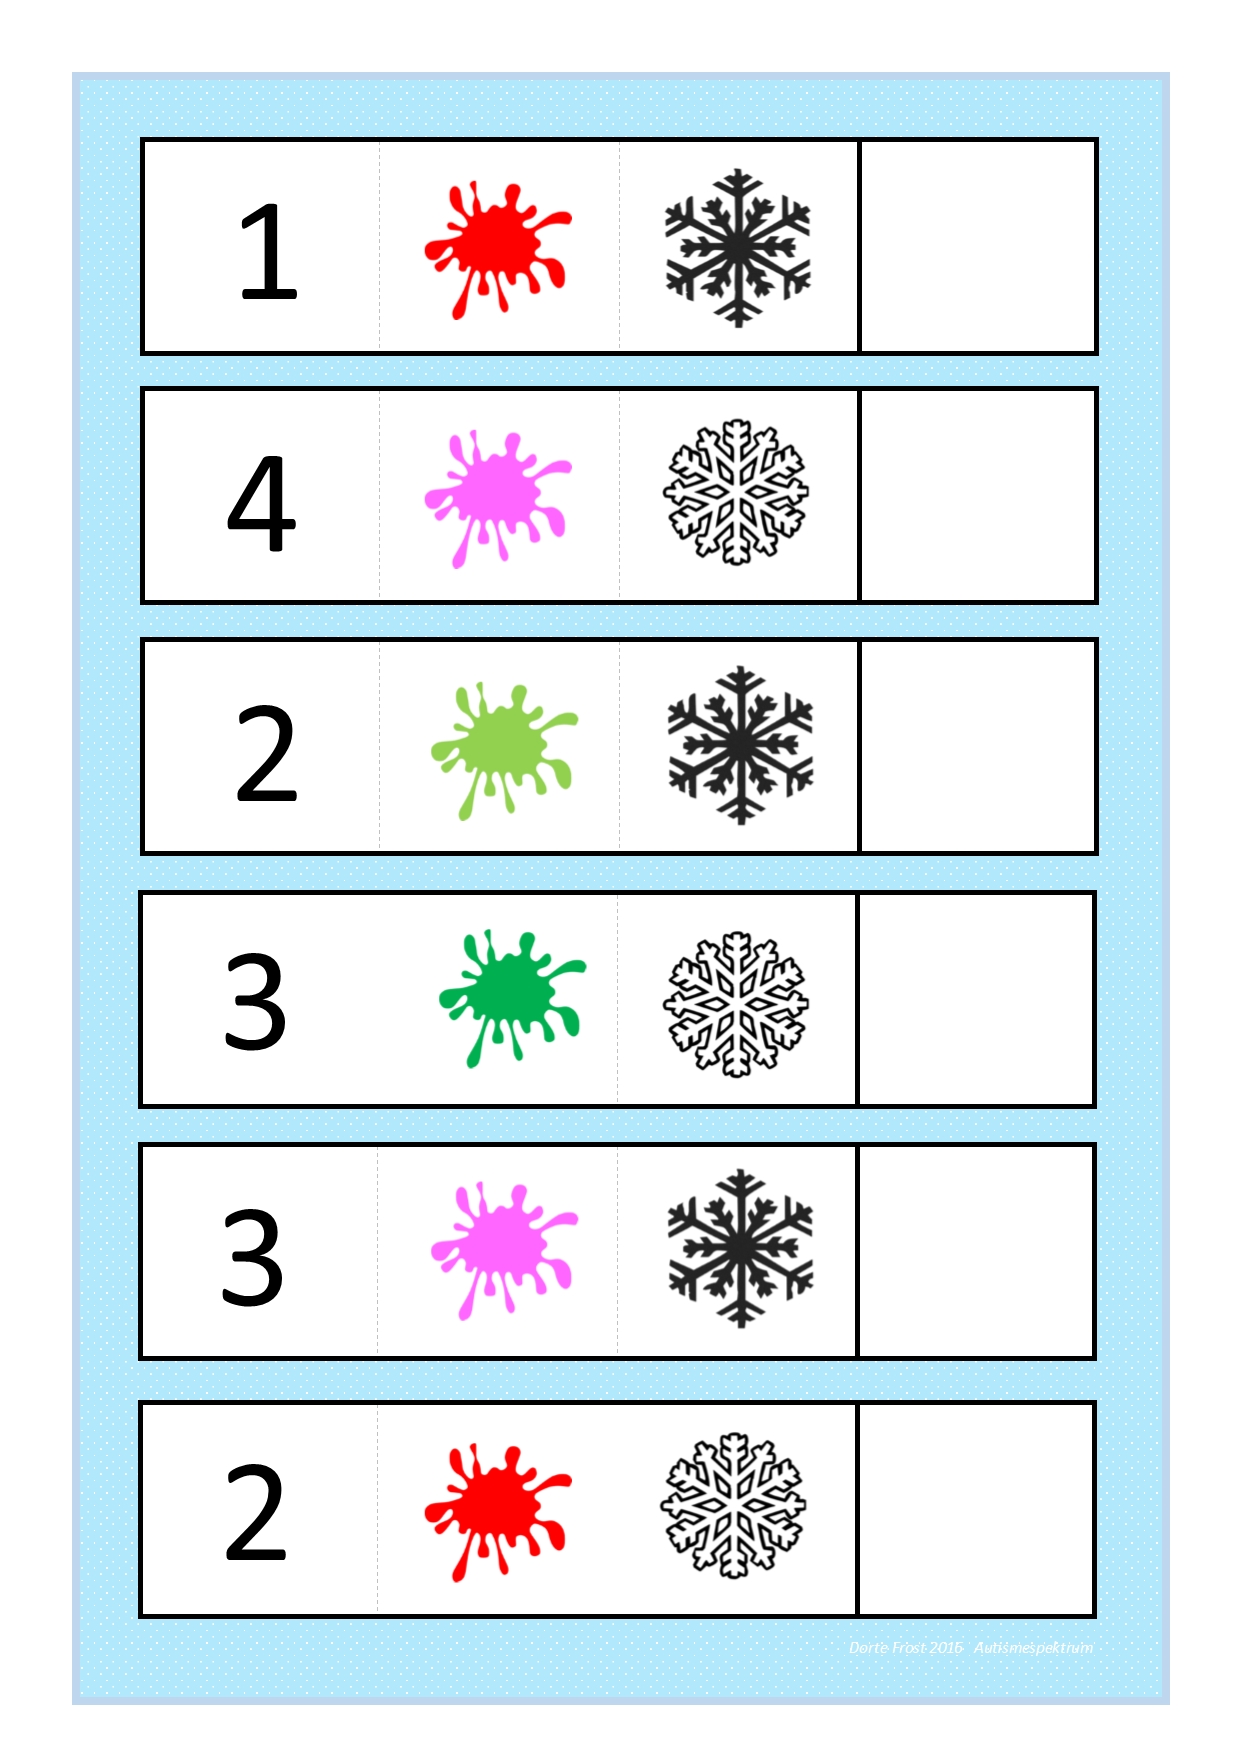 Board For The Snowflake Logic Game Find The Belonging